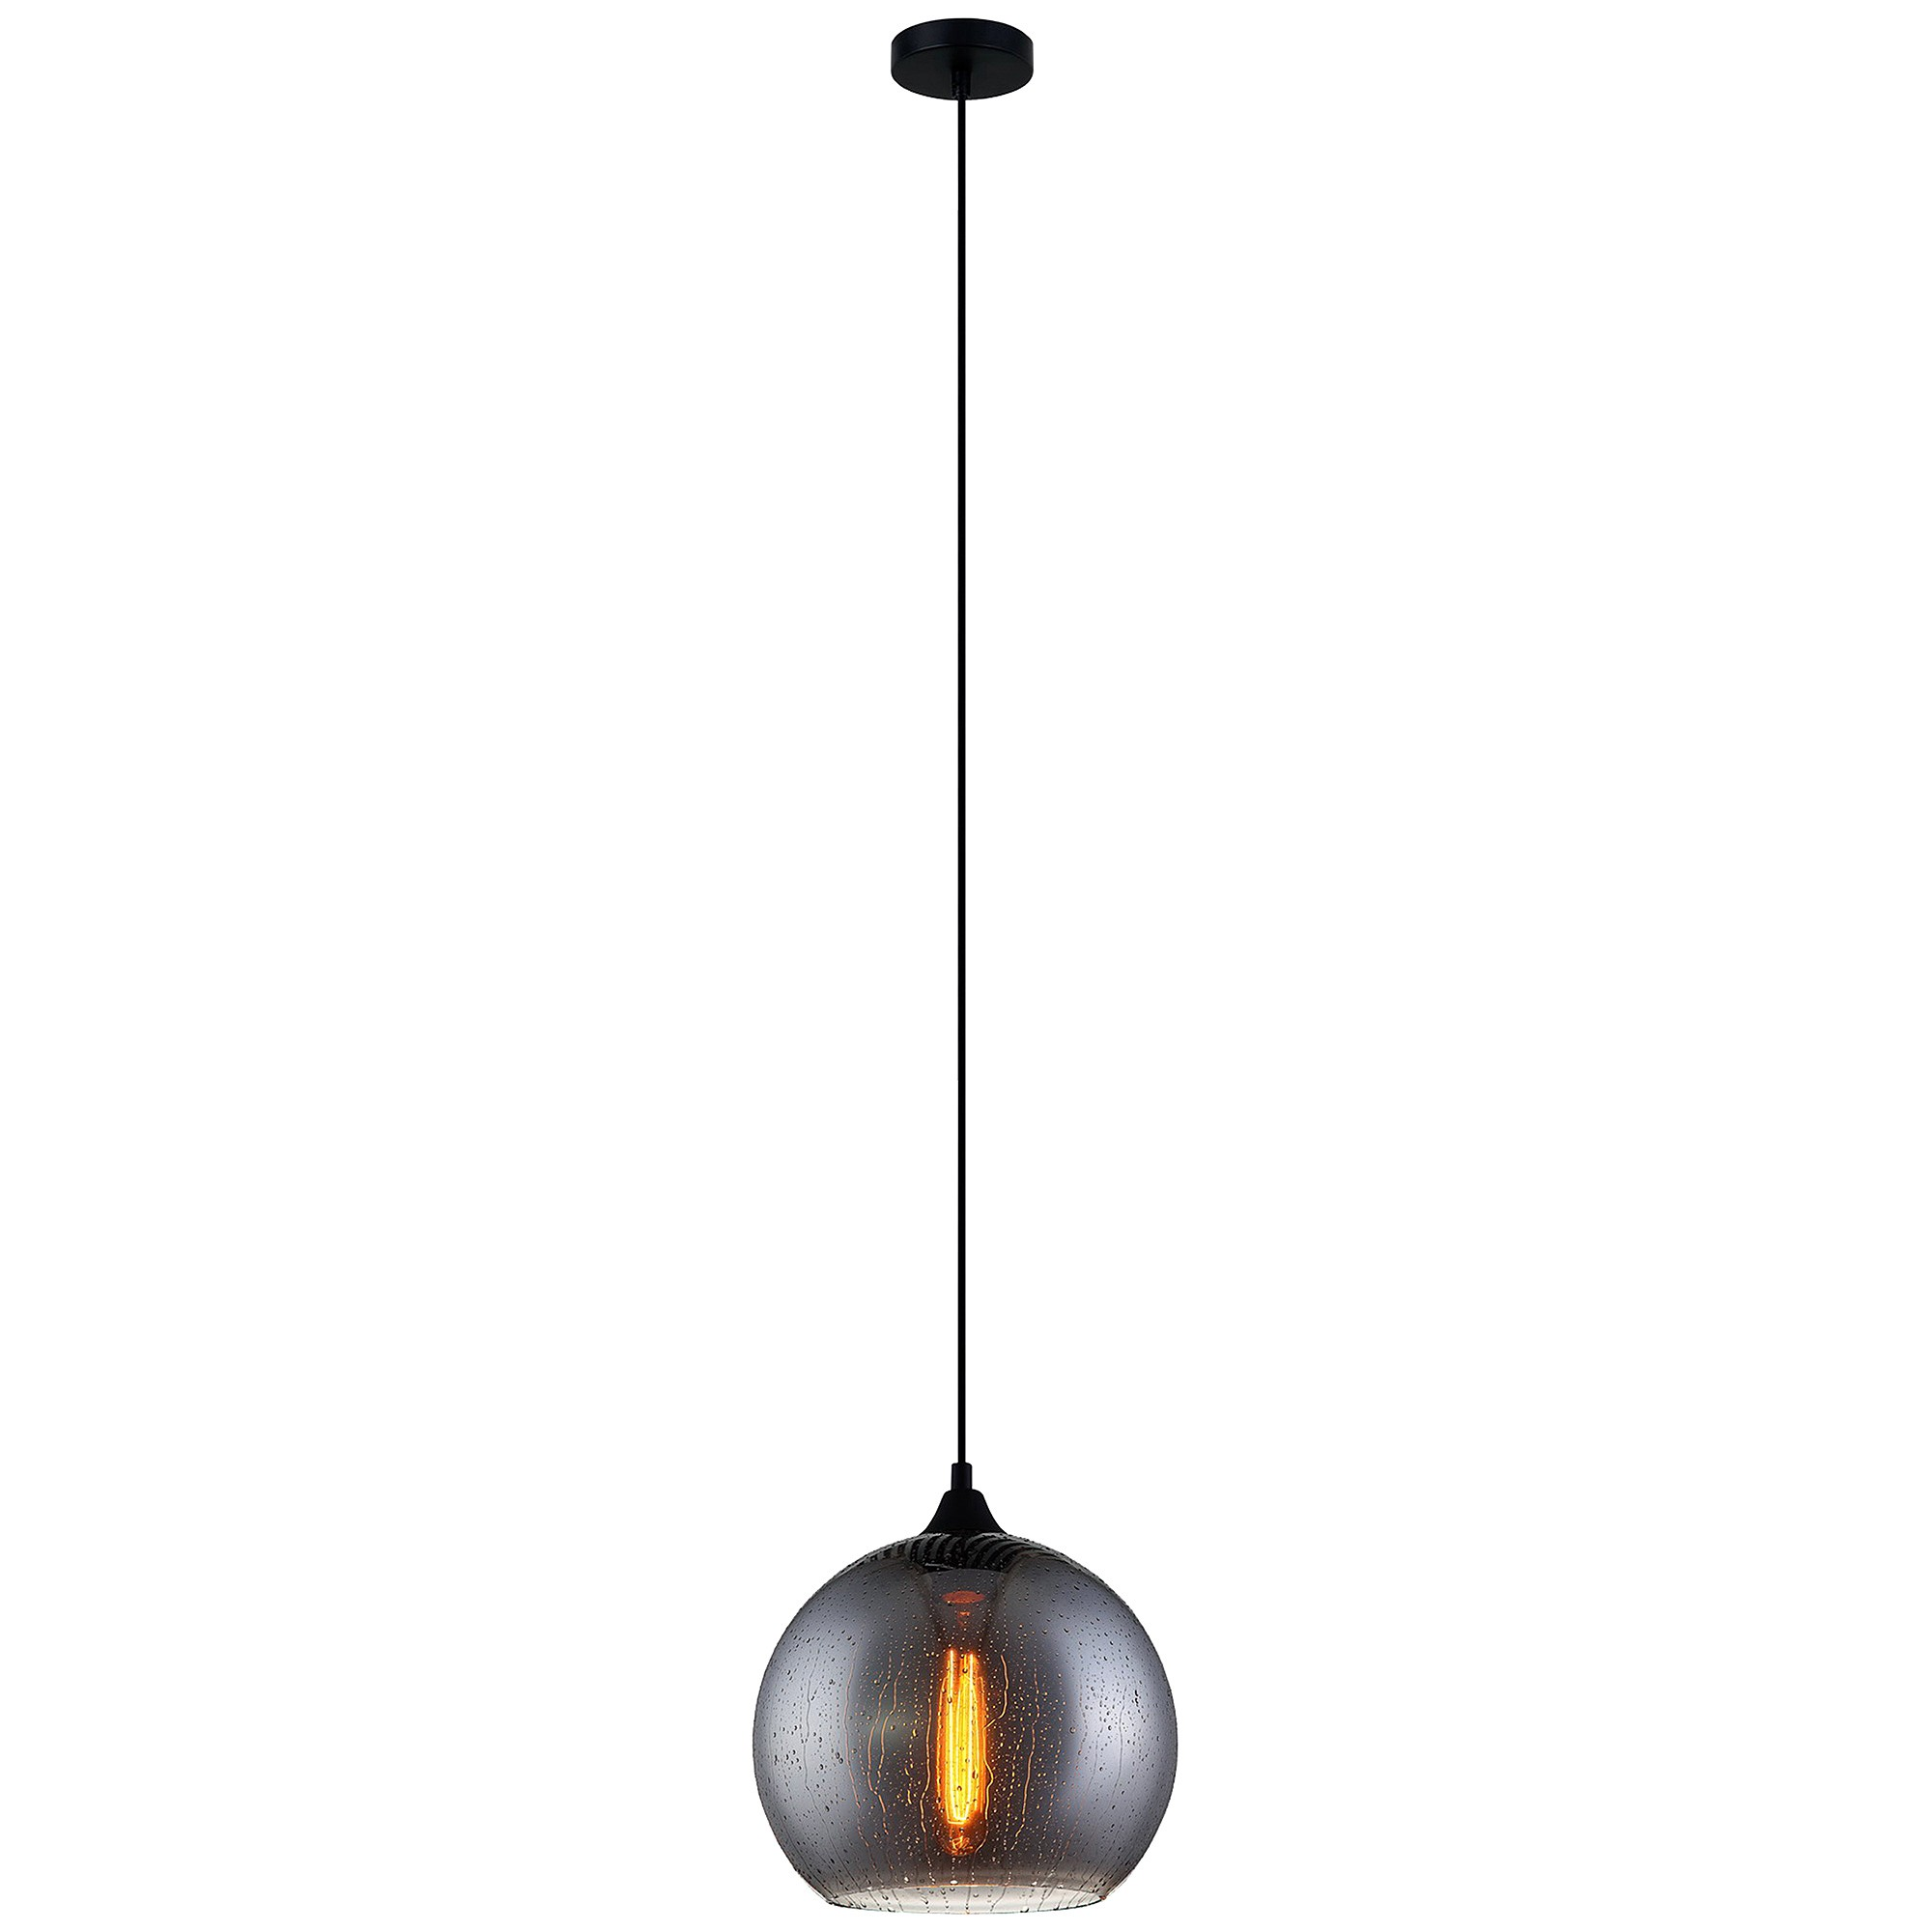 Chuva Rain Drop Glass Pendant Light, Ball